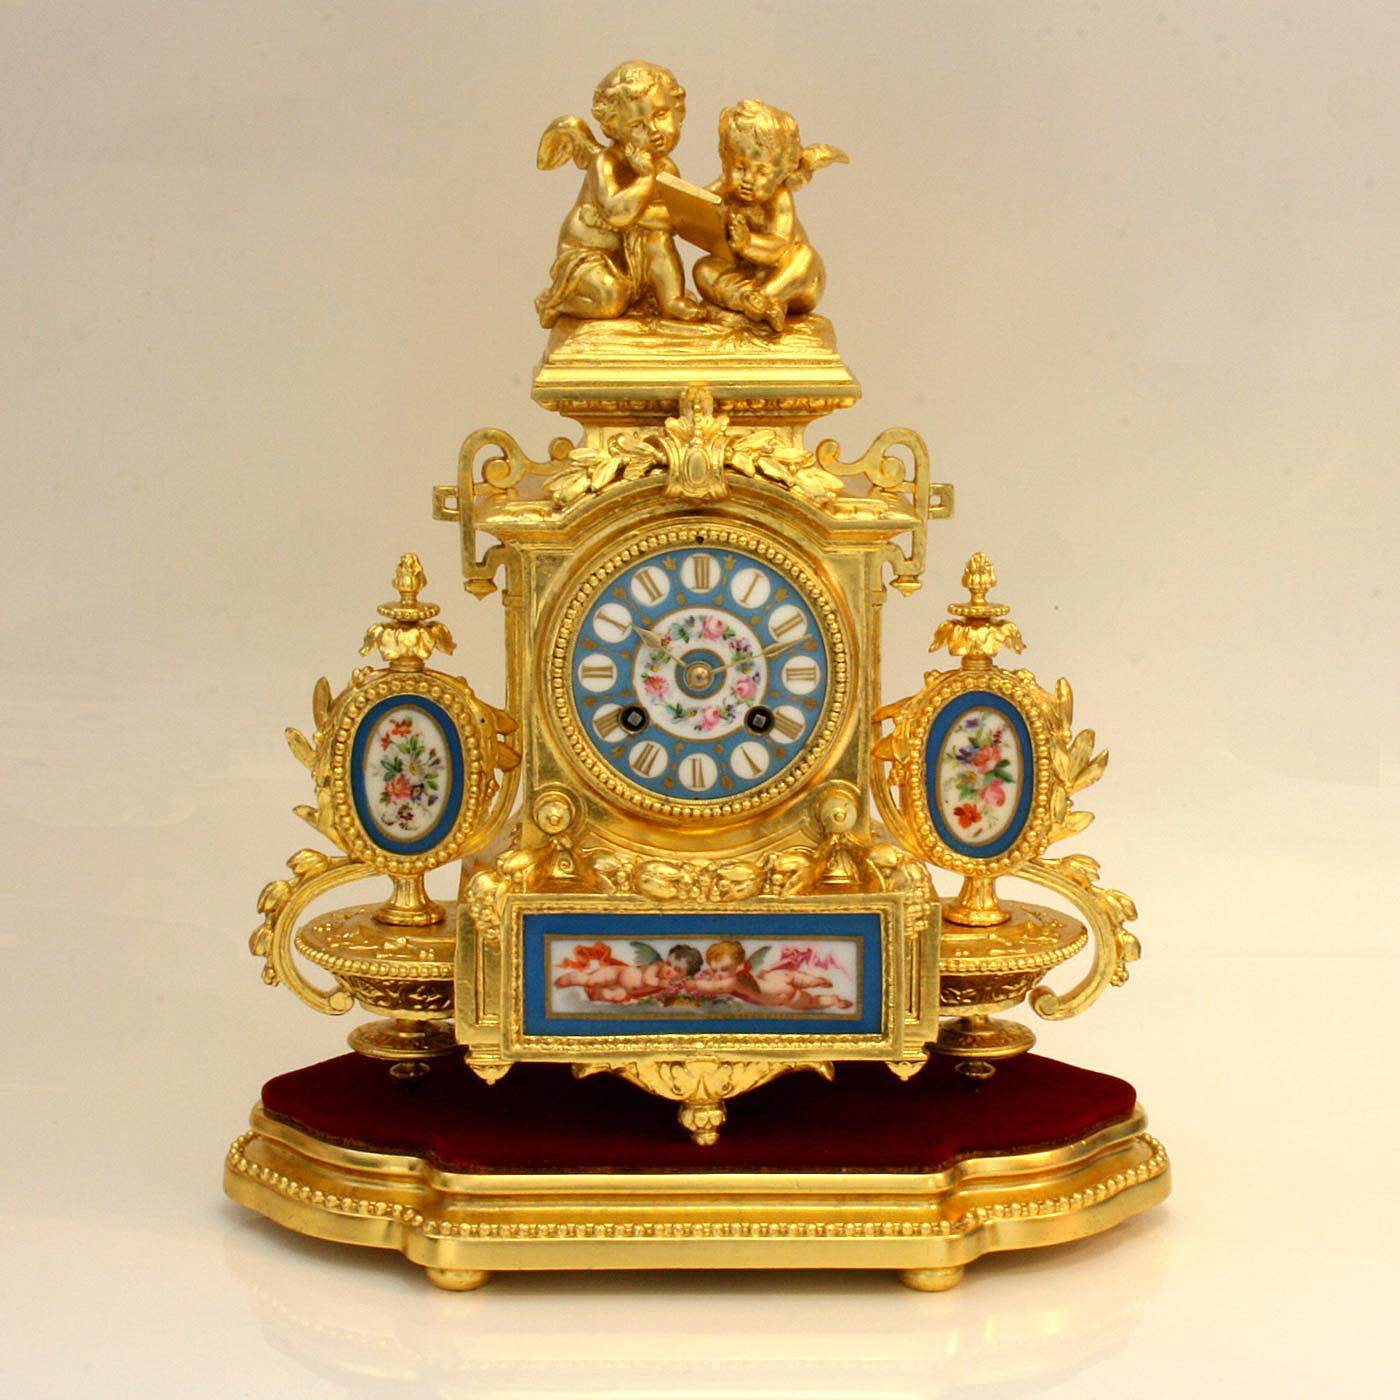 french-mantle-clock-3044-1.